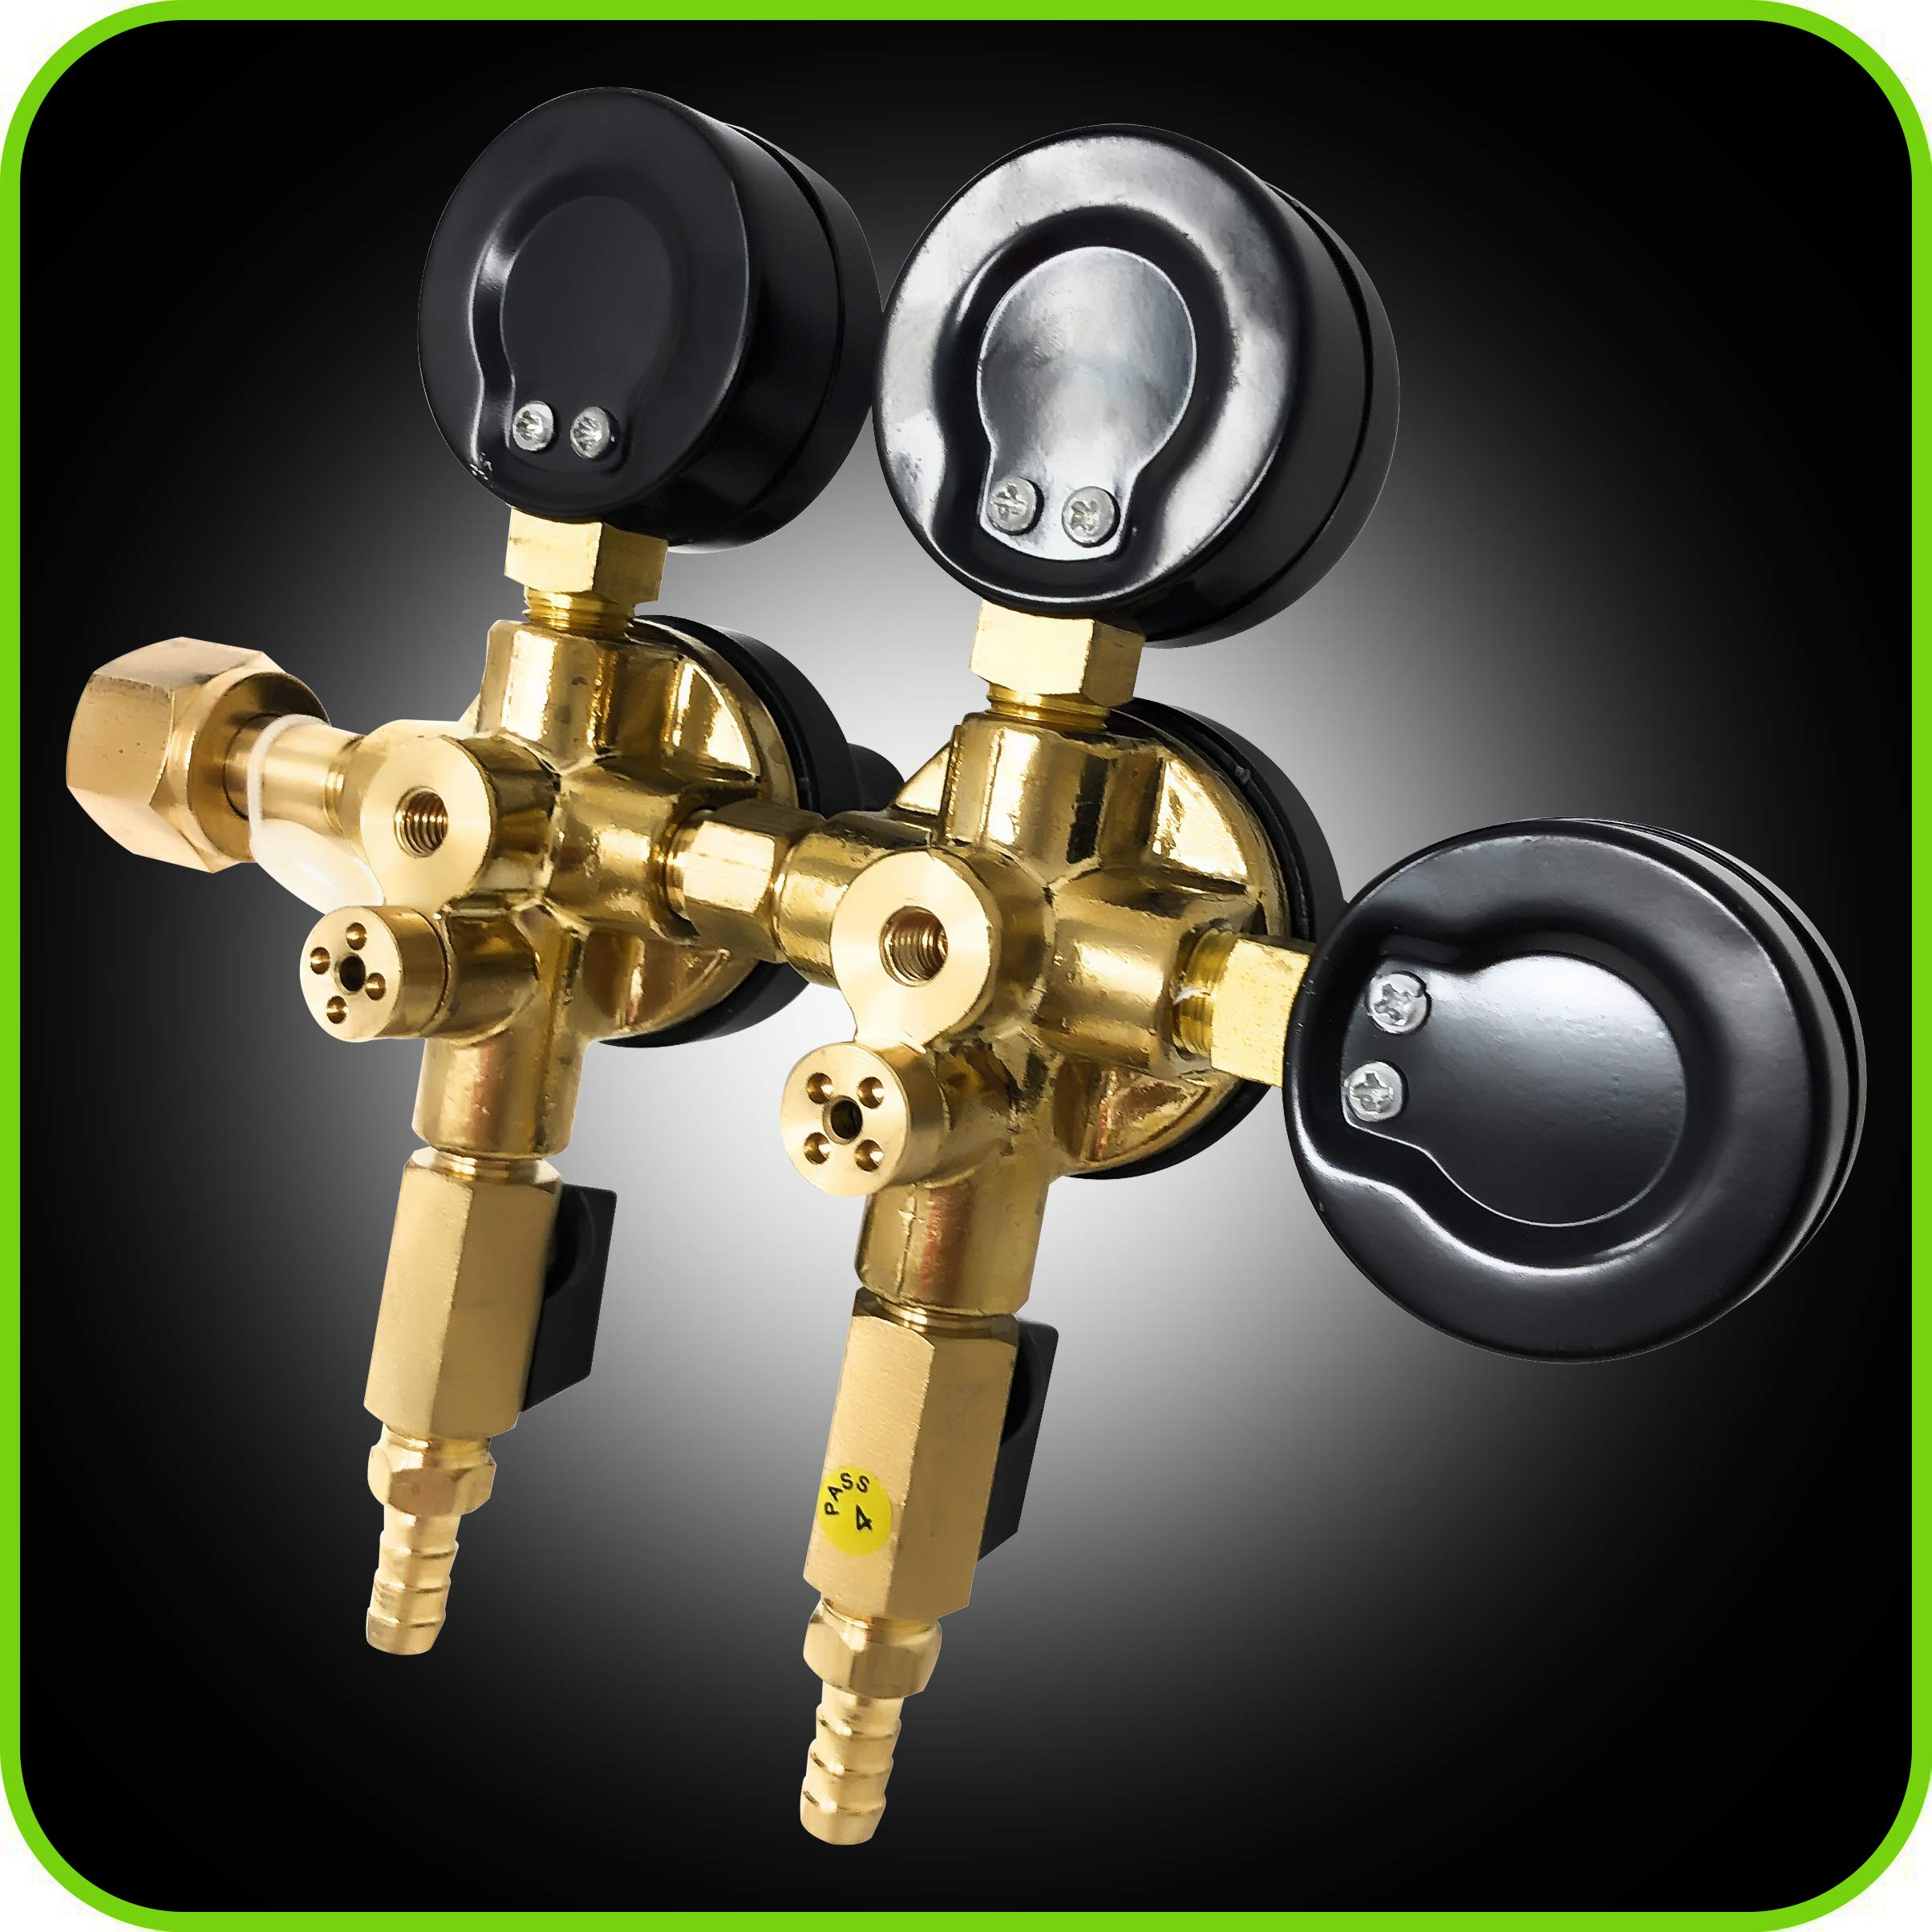 Co2 Beer Regulator Two Product Dual Pressure Kegerator Heavy Duty Features T-Style Adjusting Handle - 0 to 60 PSI-0 to 2000 Tank Pressure CGA-320 Inlet w/ 3/8'' O.D. Safety Discharge 50-55 PSI by Manatee (Image #7)